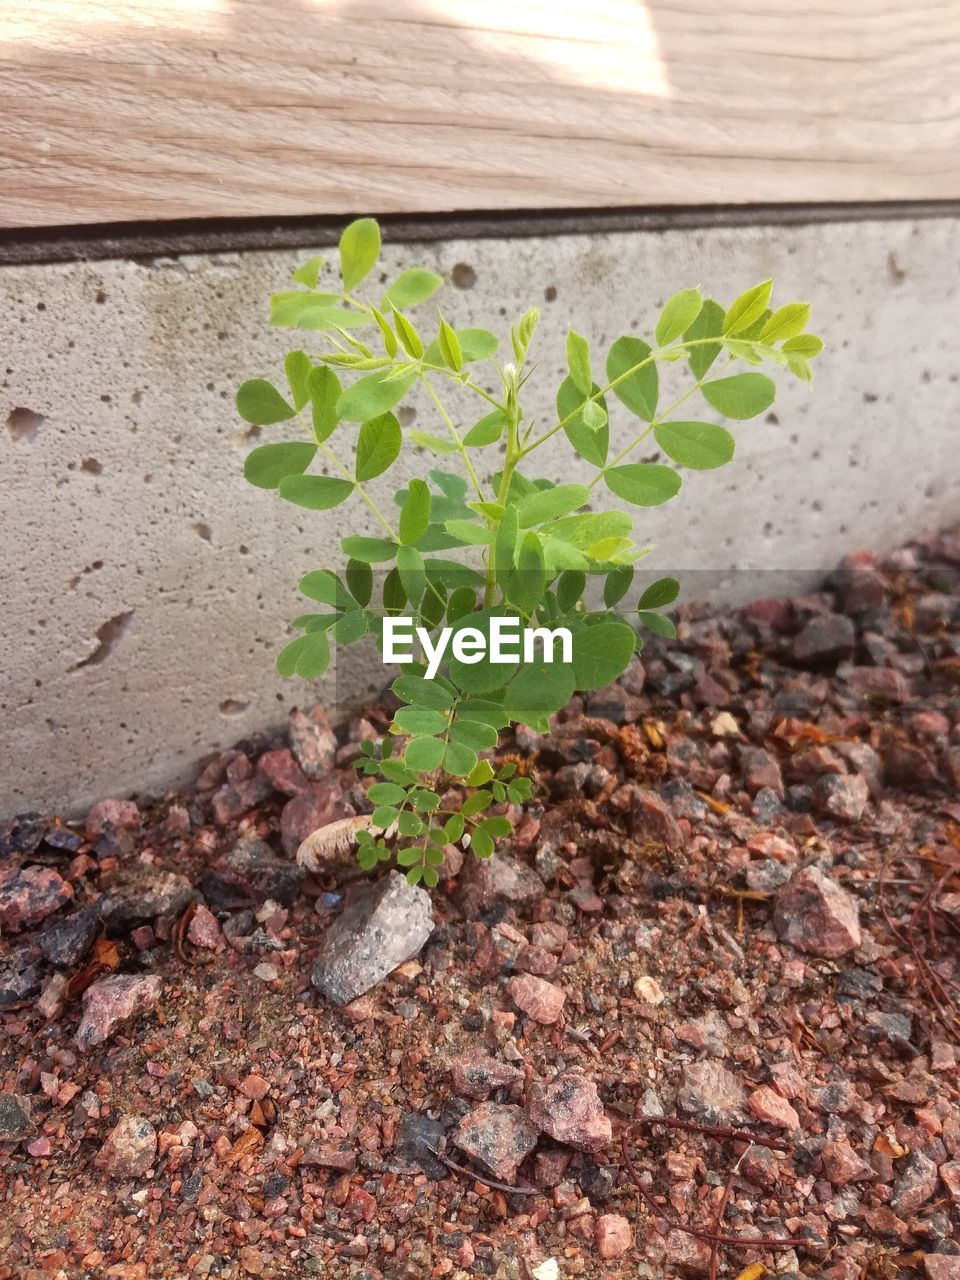 growth, leaf, plant part, plant, nature, dirt, no people, beginnings, agriculture, day, green color, vegetable, high angle view, food, food and drink, seedling, outdoors, close-up, land, freshness, gardening, mud, small